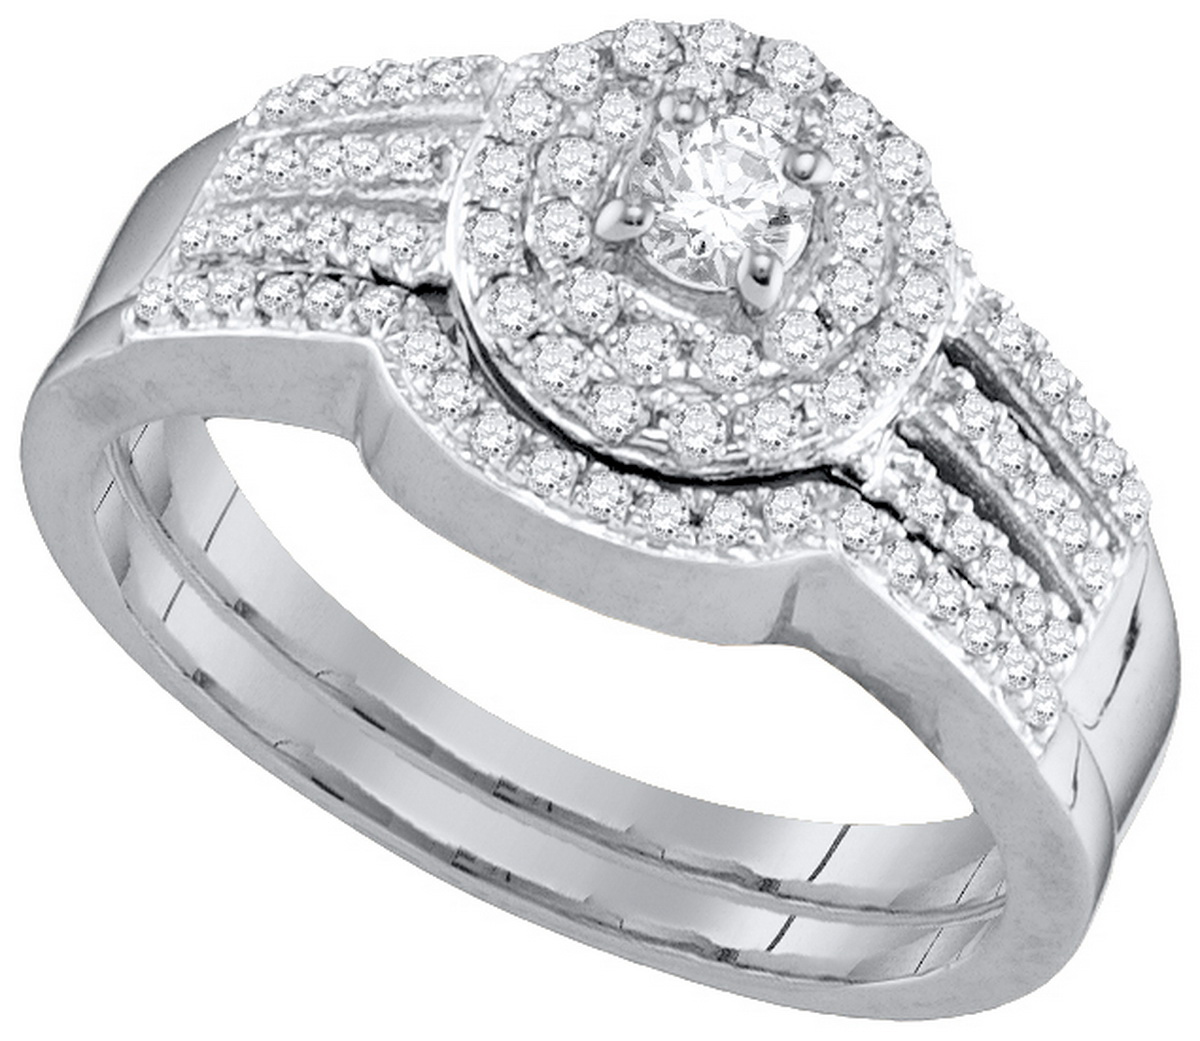 3 strand engagement ring Rings Compare Prices at Nextag